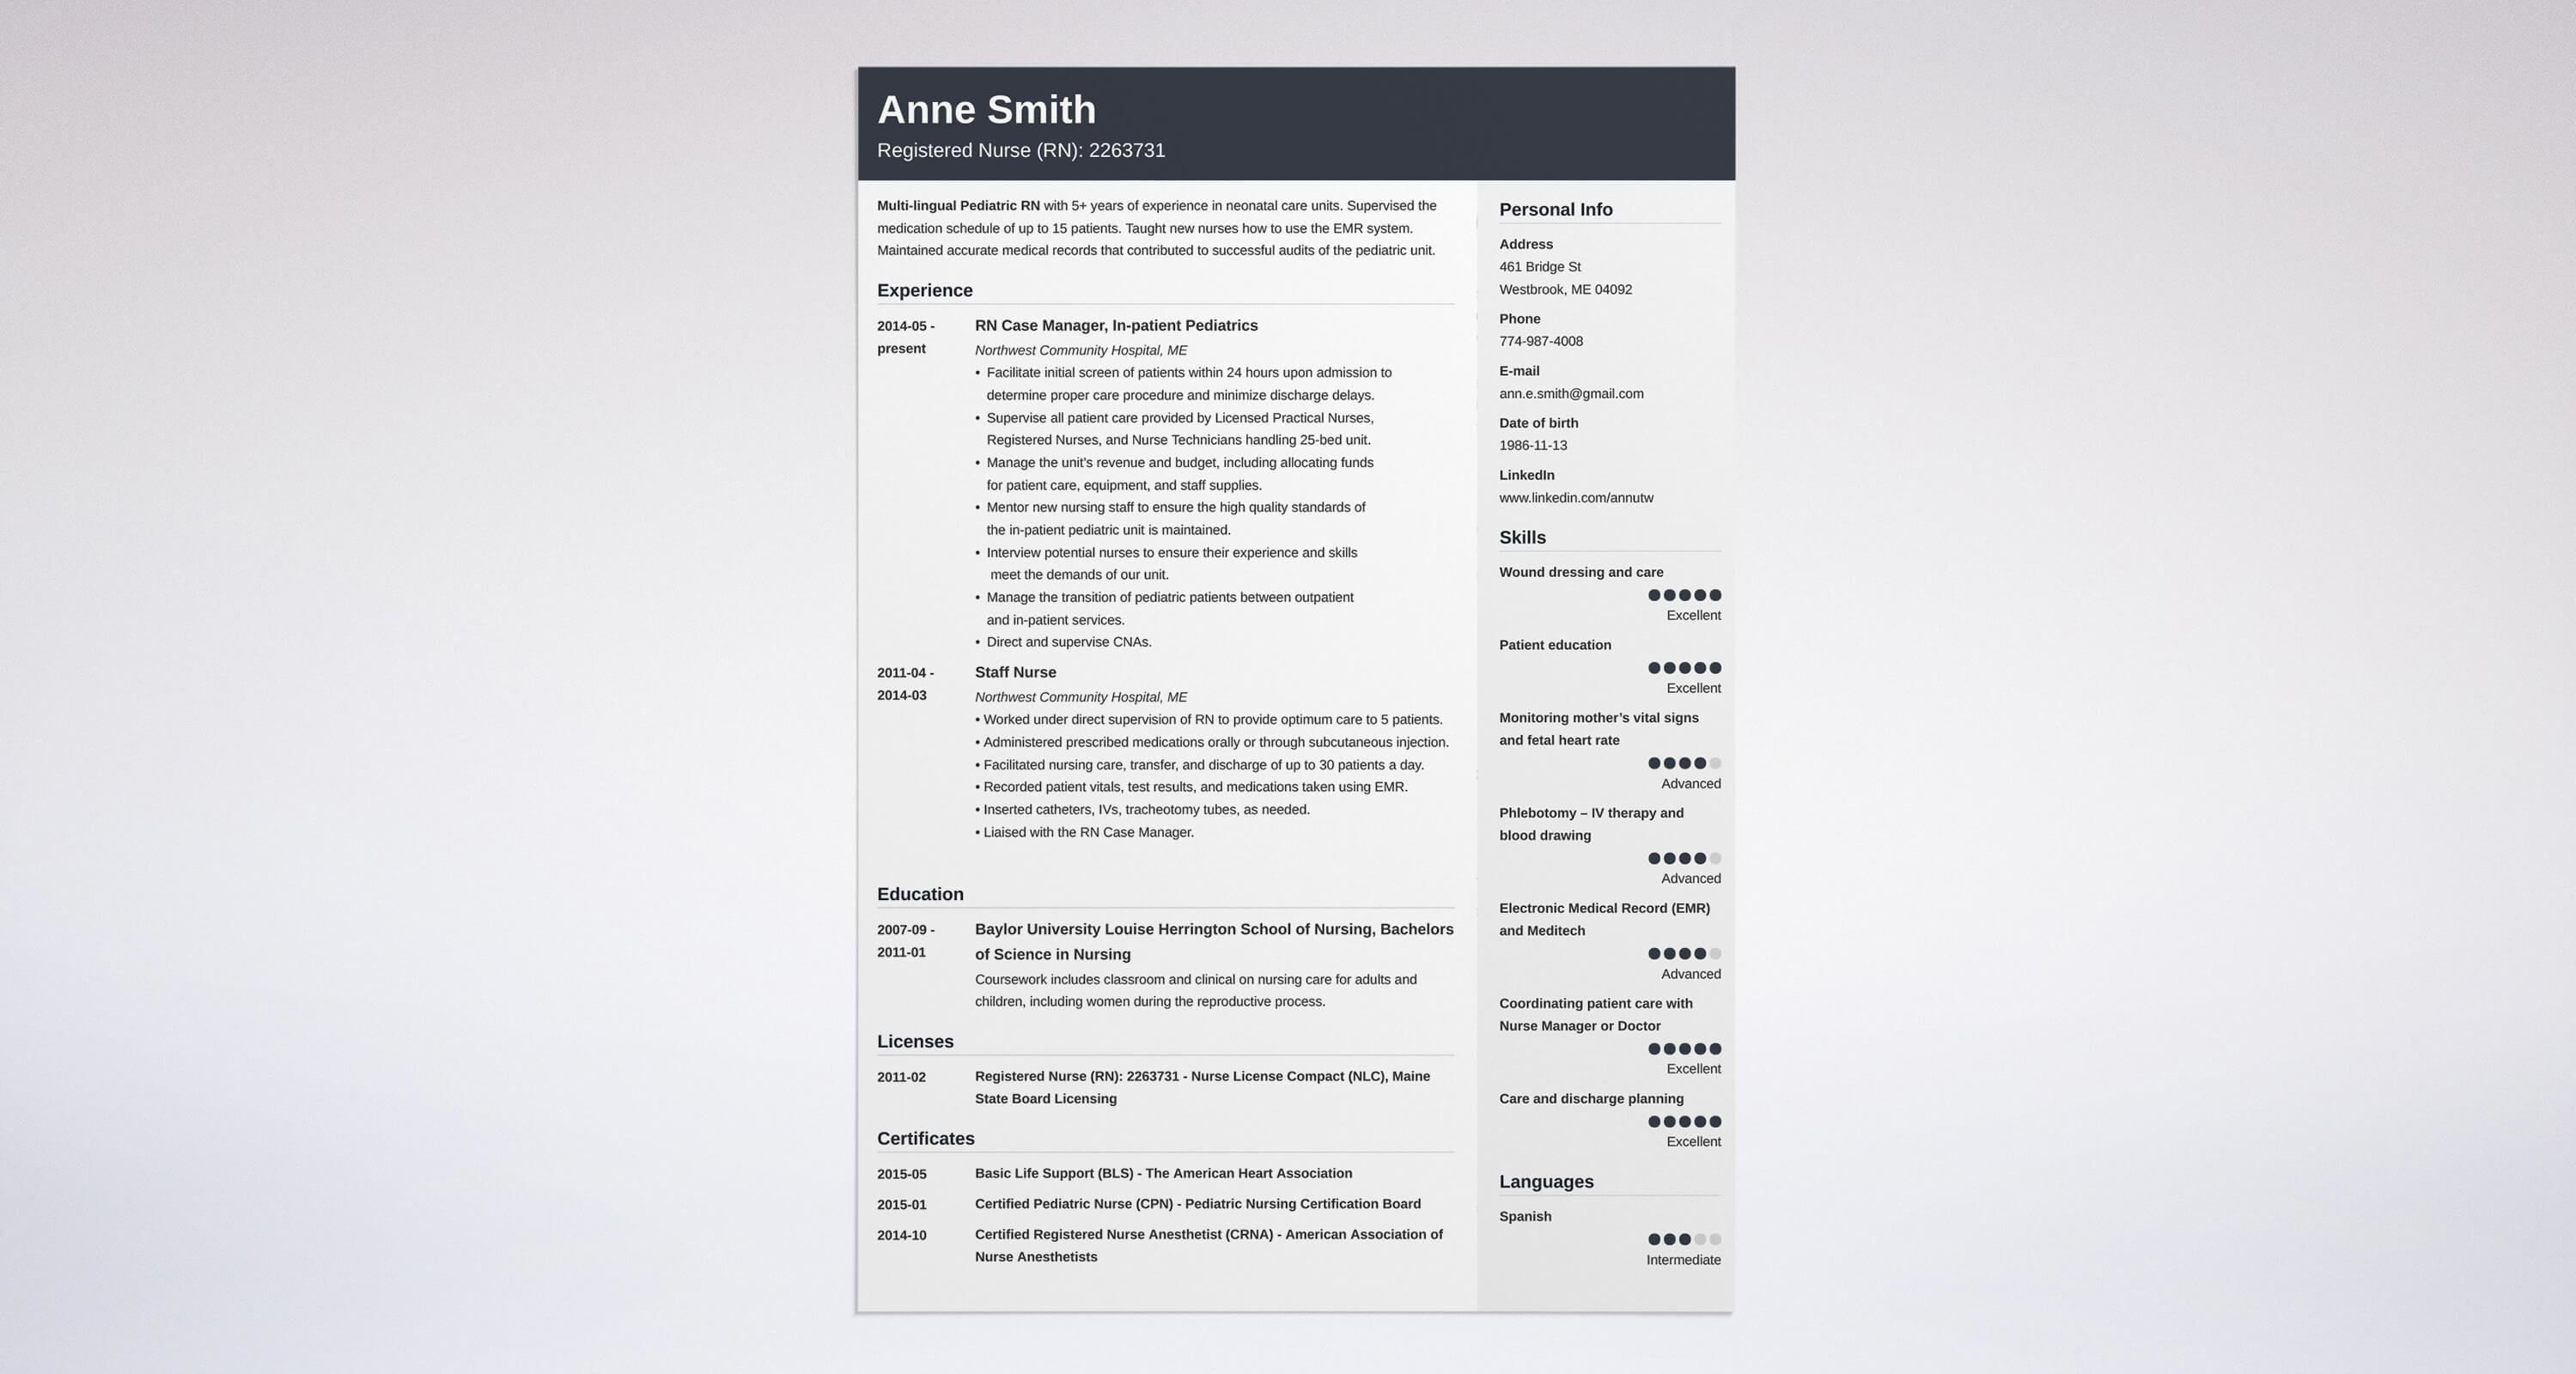 Resume Skills To Put On A Resume For Nursing how to write a nursing resume that stands out tips examples format professional resume